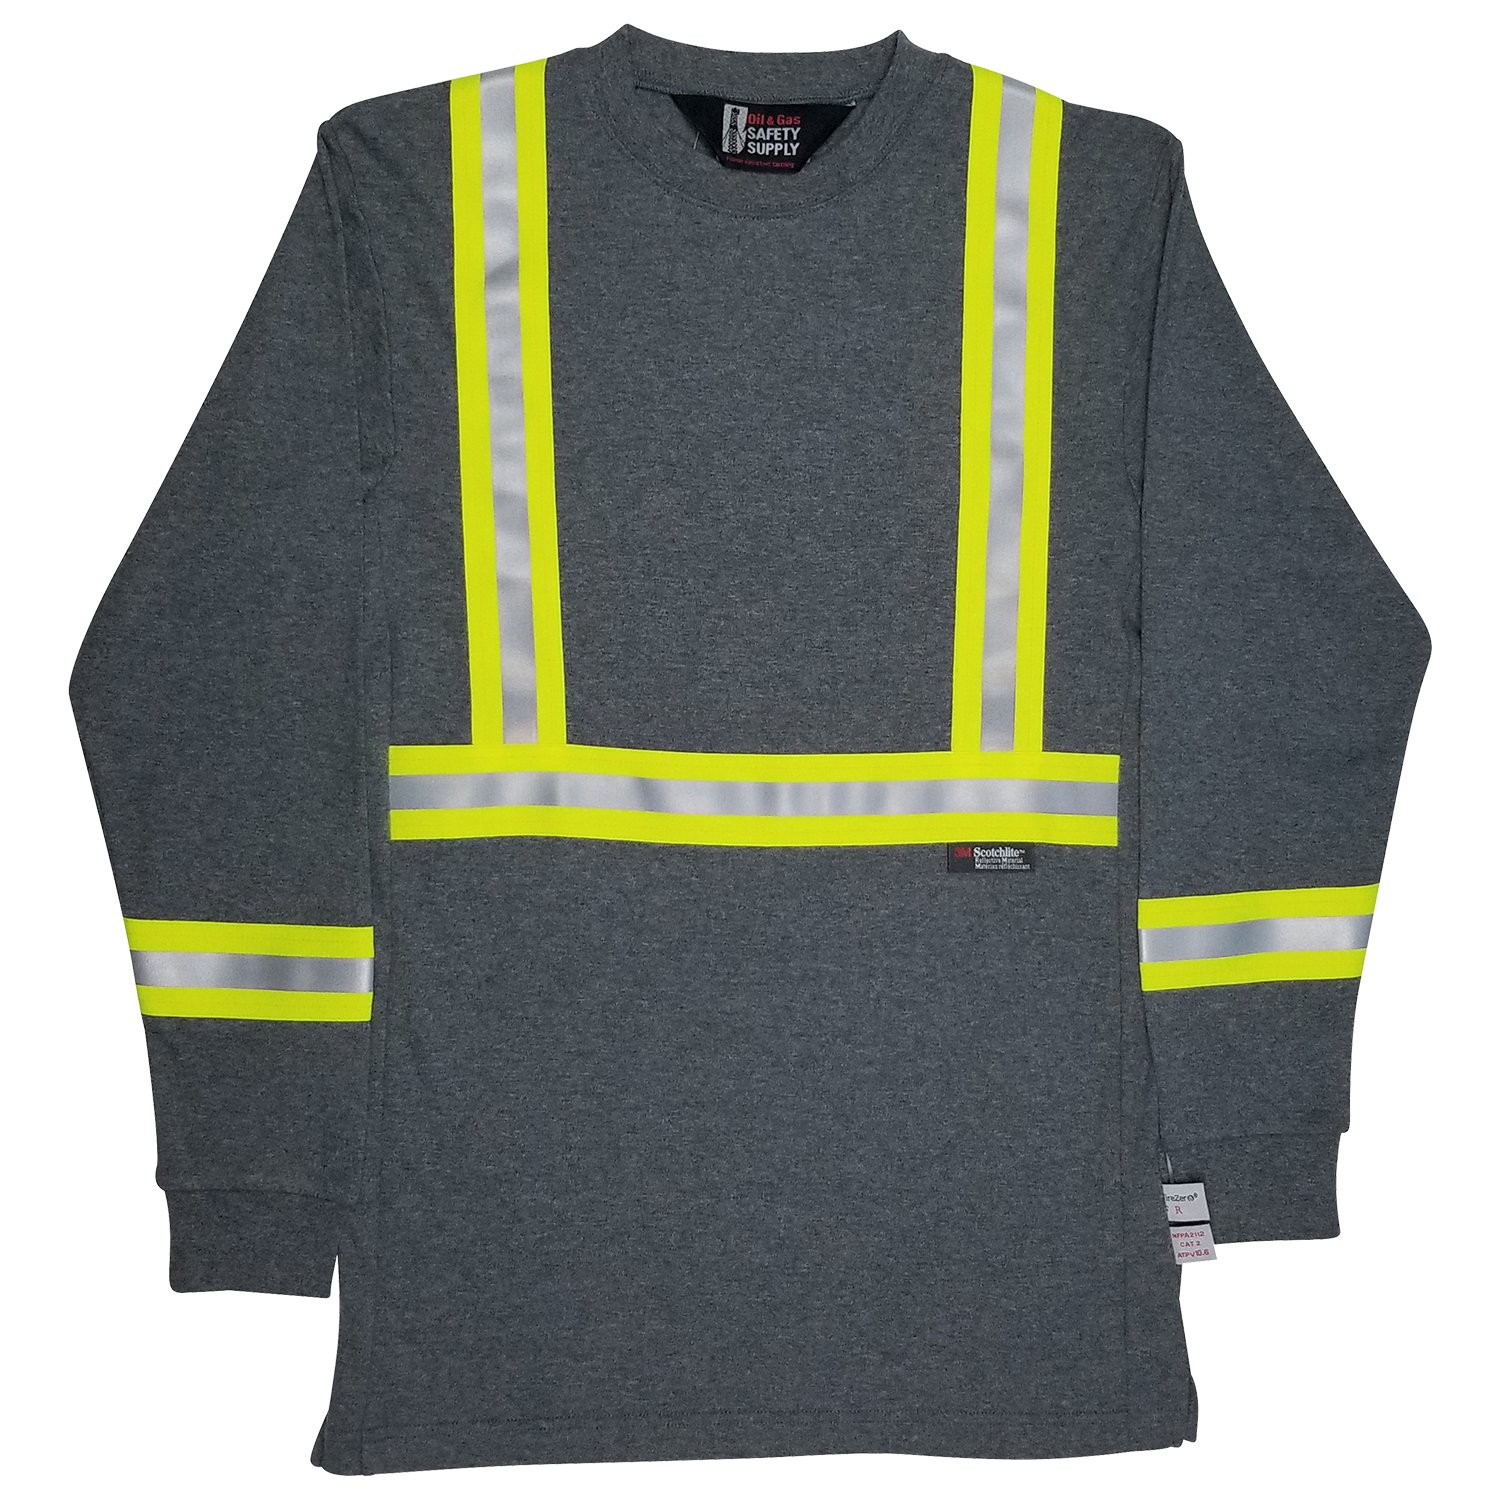 Oil and Gas Safety Supply Men's FR Reflective Long Sleeve Shirt XL Gray